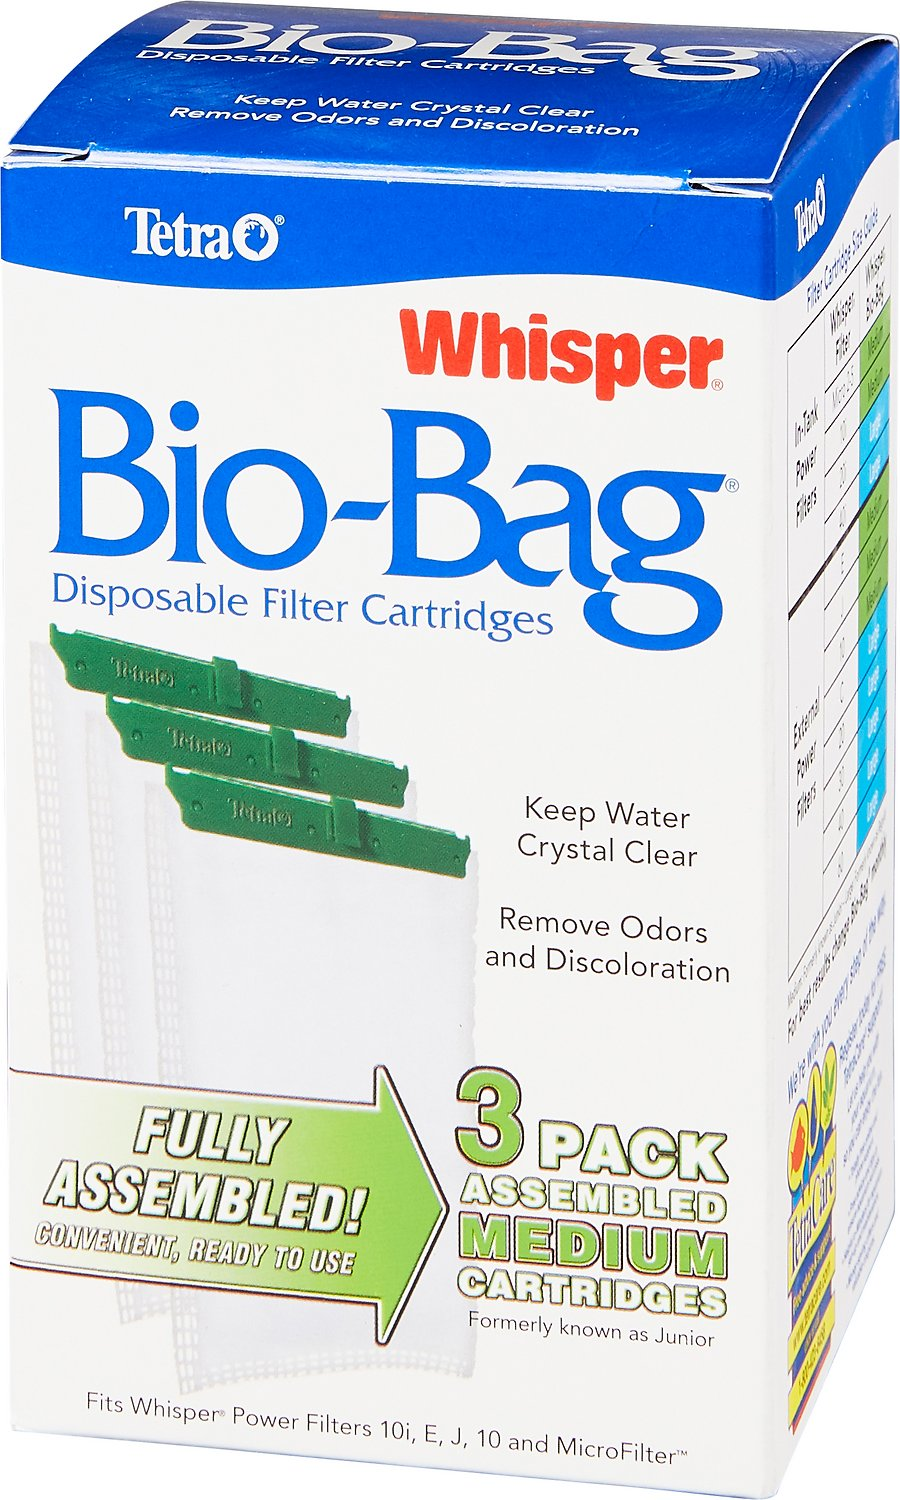 Tetra Whisper Bio-Bags Medium Filter Cartridge Image